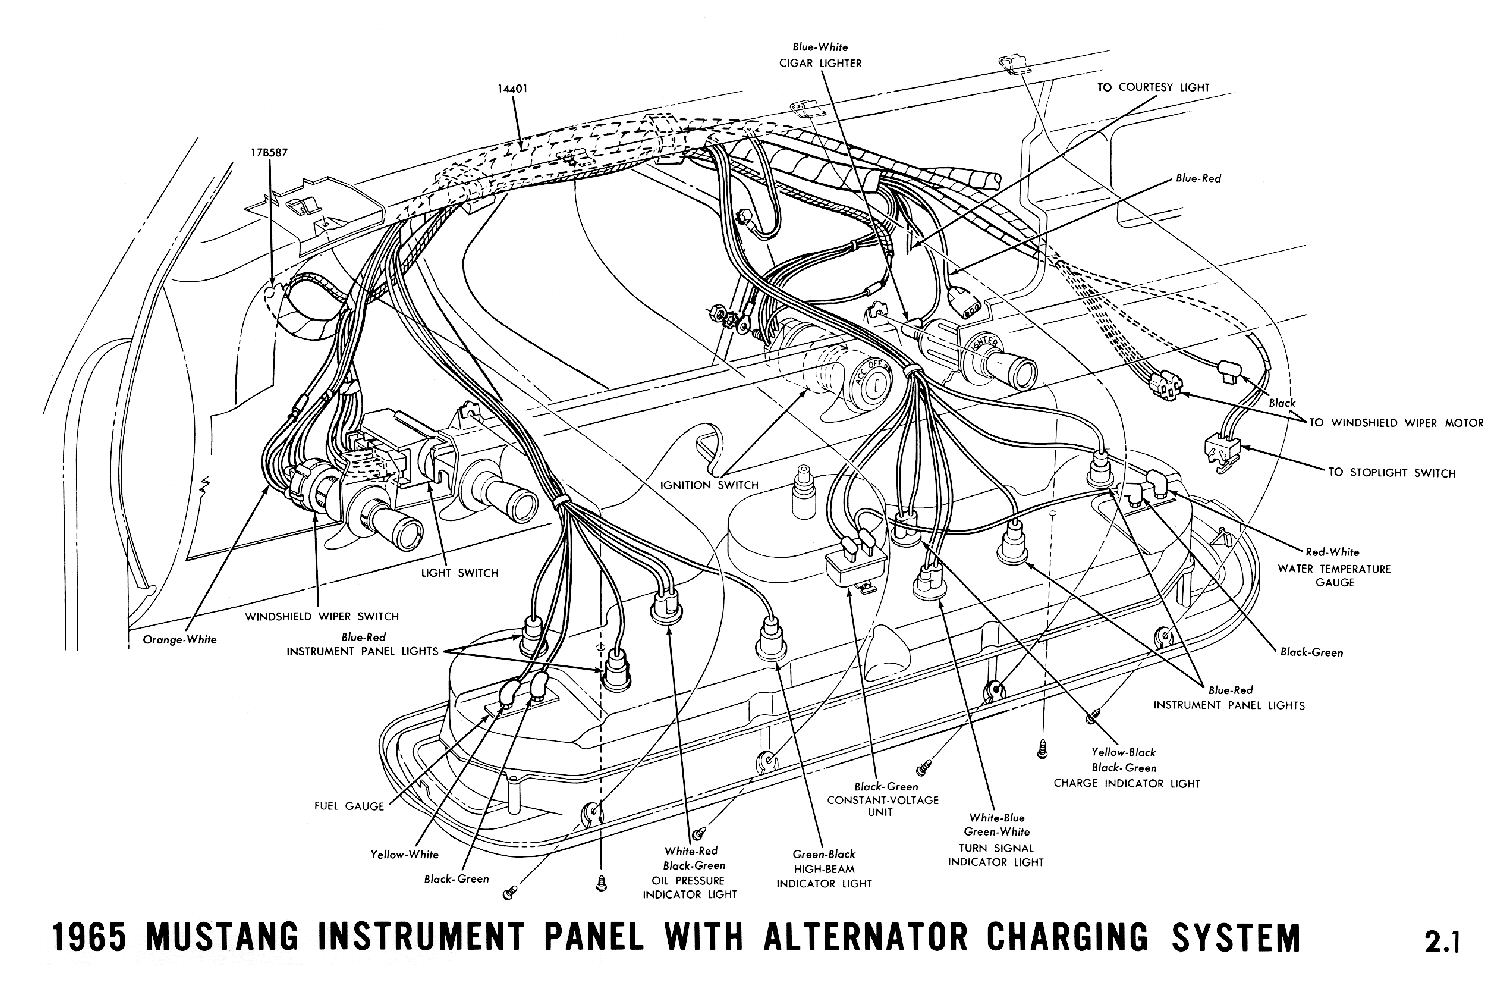 1965 mustang wiring diagrams average joe restoration rh averagejoerestoration com 1966 Mustang Horn Wiring Diagram 1966 Mustang Engine Wiring Diagram